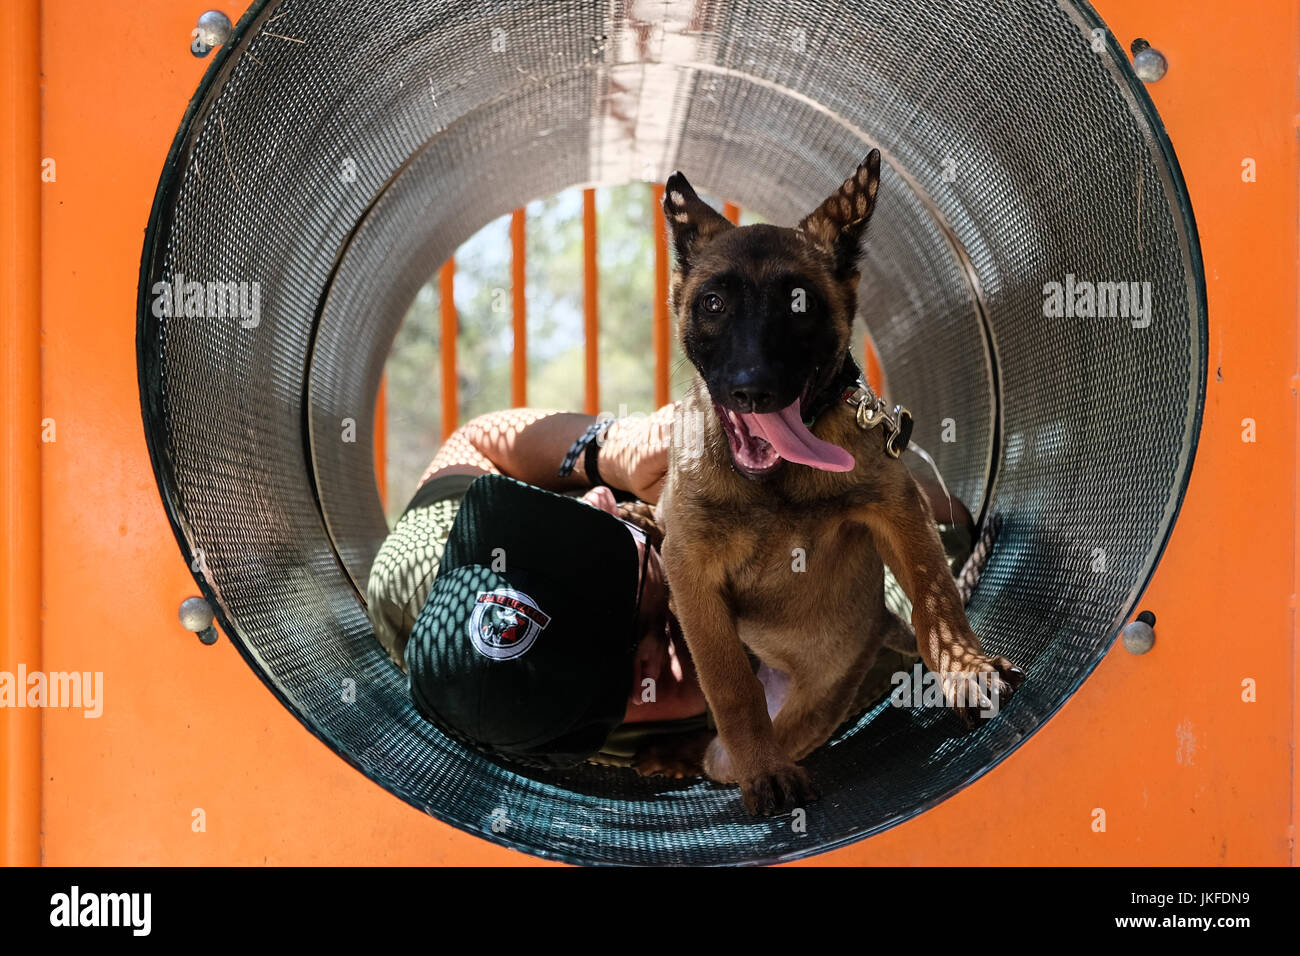 Efrat, West Bank. 23rd July, 2017. A handler from the Israel Dog Unit, IDU, a non profit canine unit, playfully - Stock Image